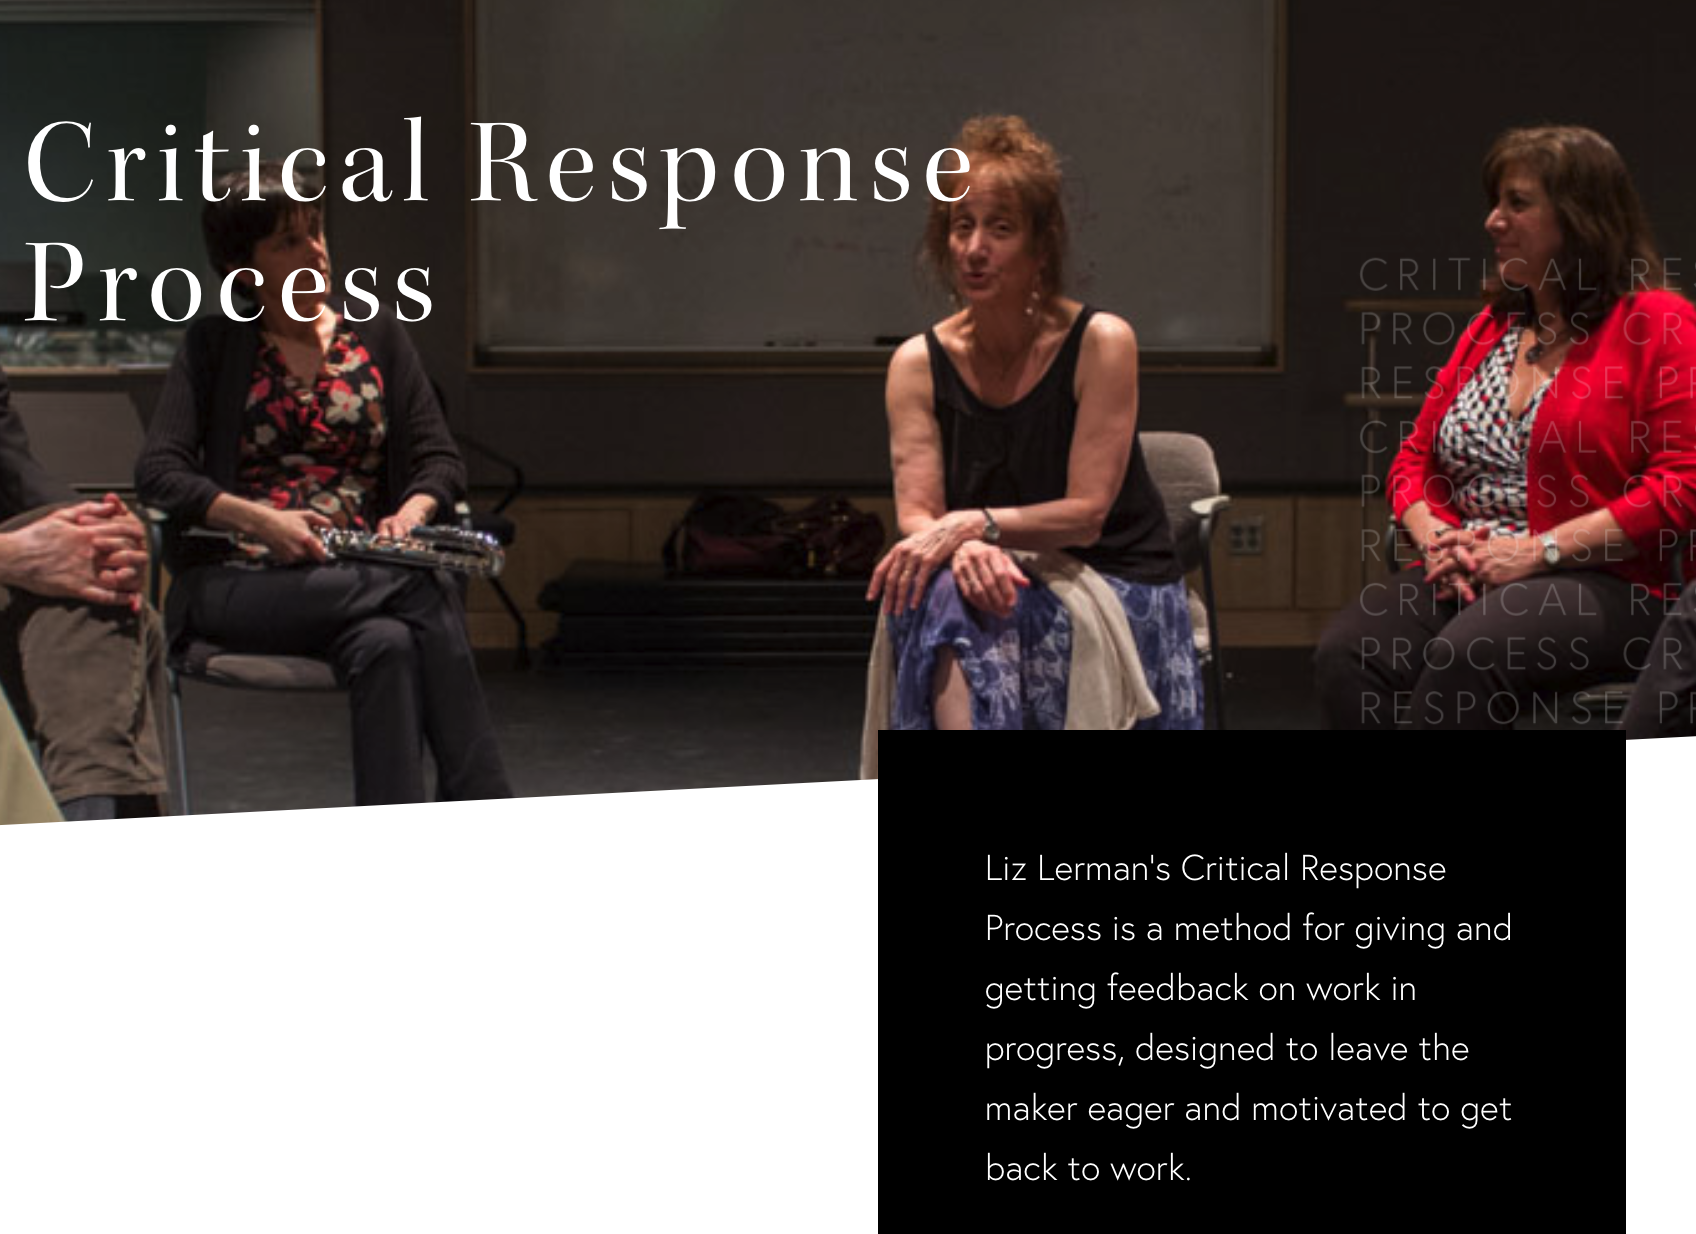 A screencap from the image at the top of the Liz Lerman Critical Response Process webpage which shows Liz Lerman leading a workshop